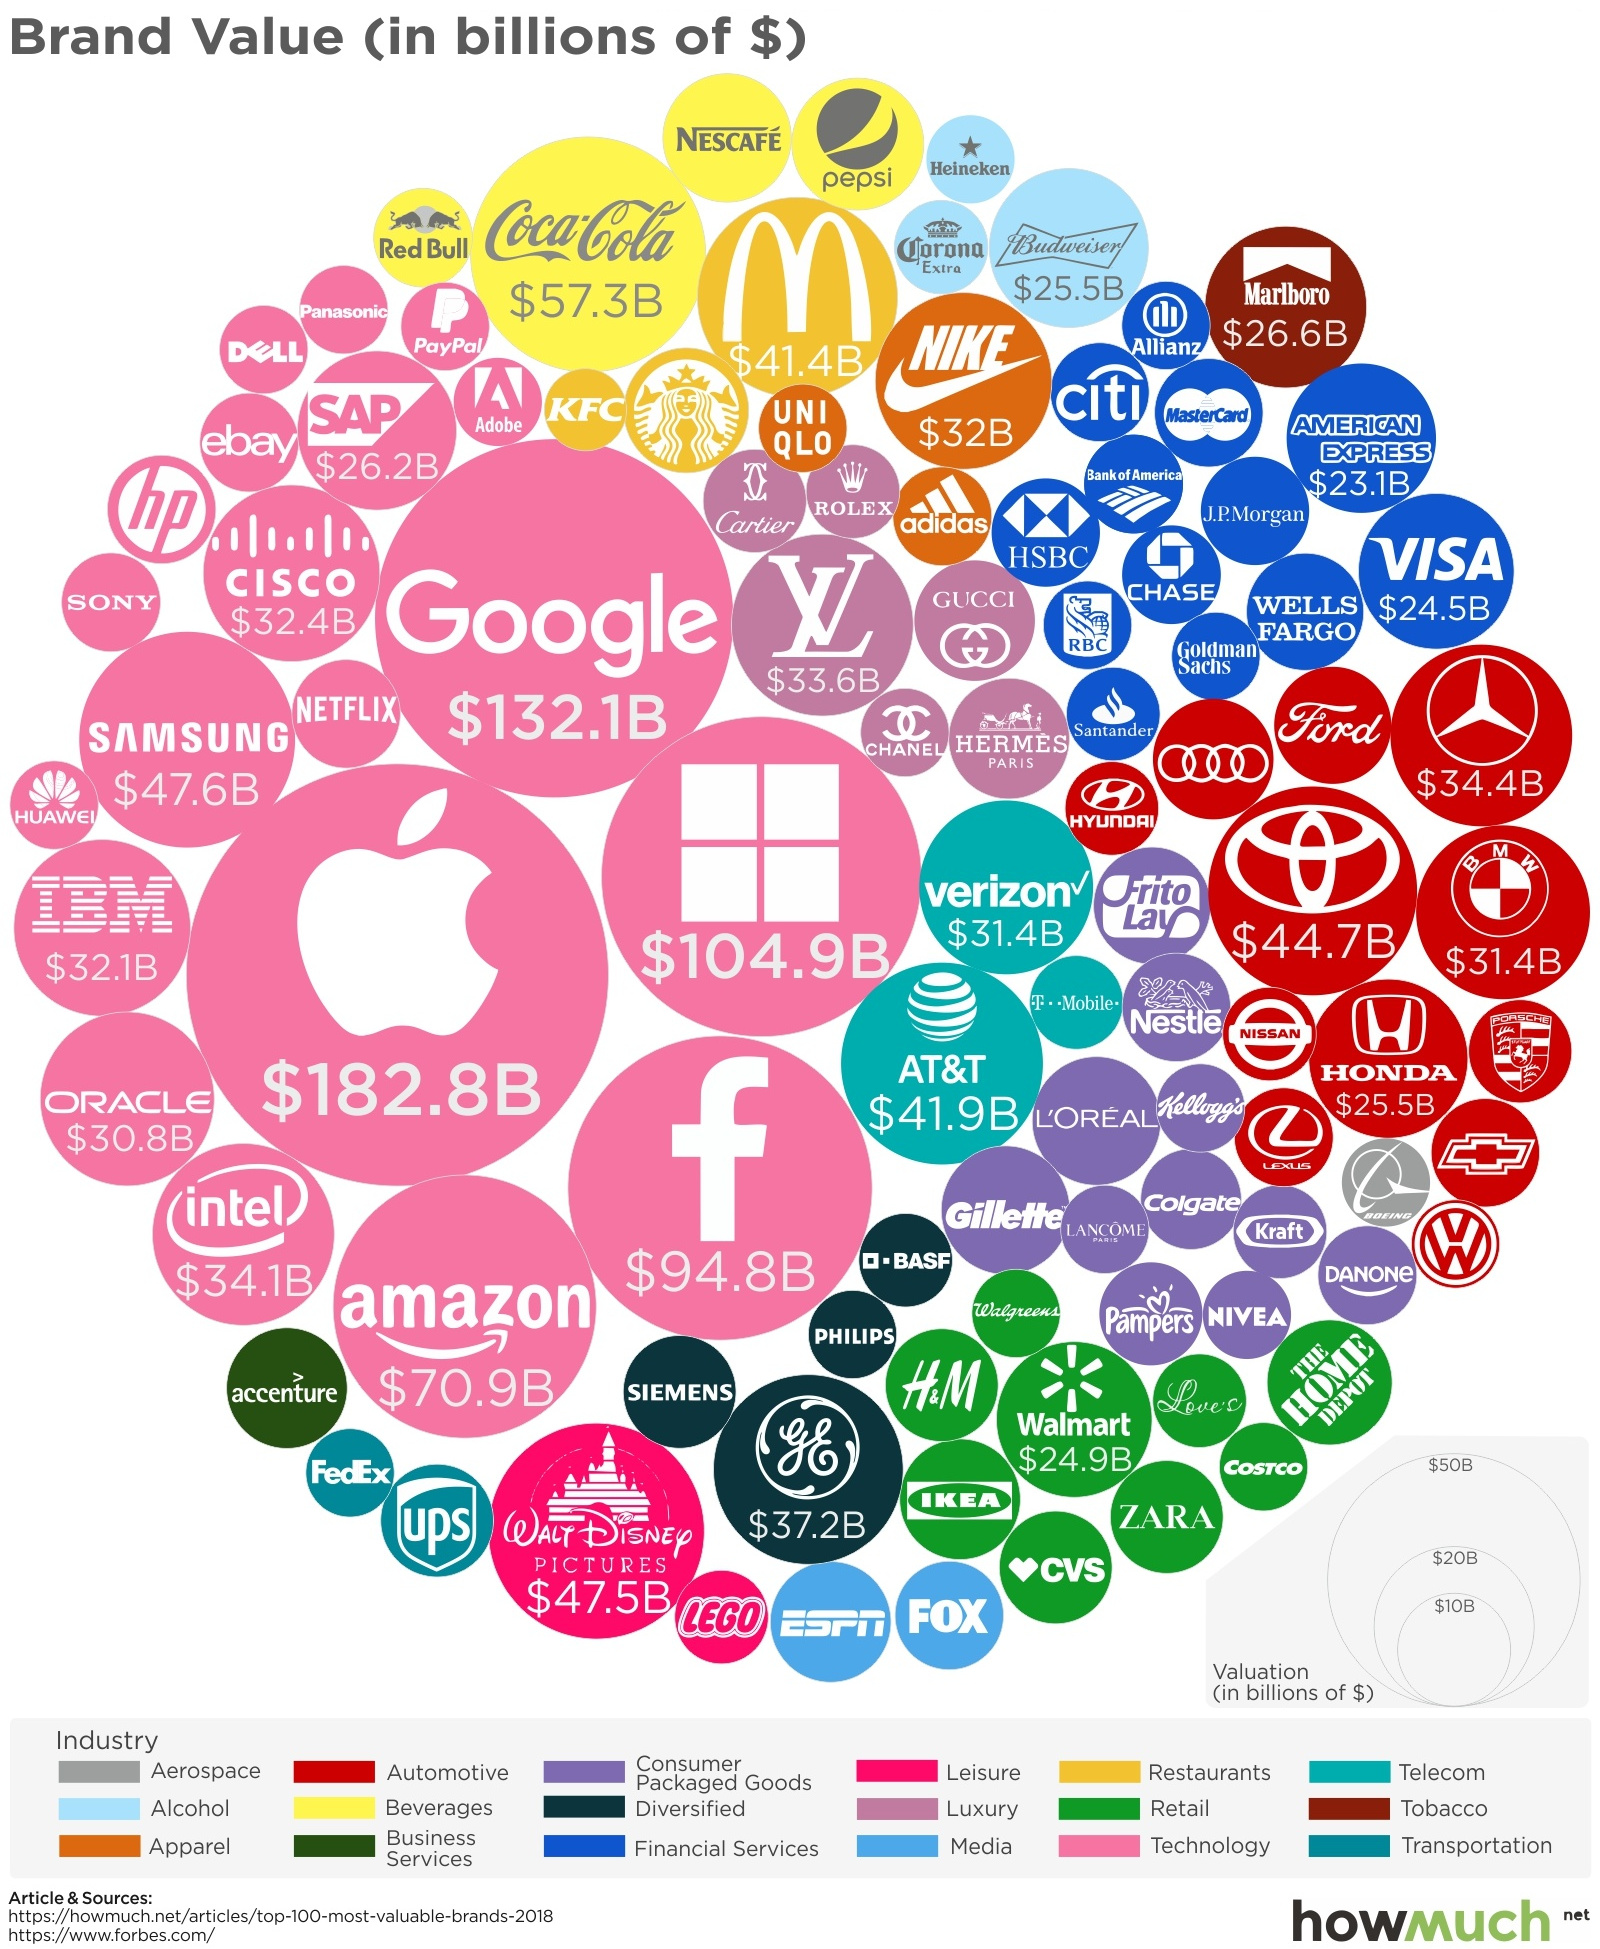 The World's 100 Most Valuable Brands in 2018